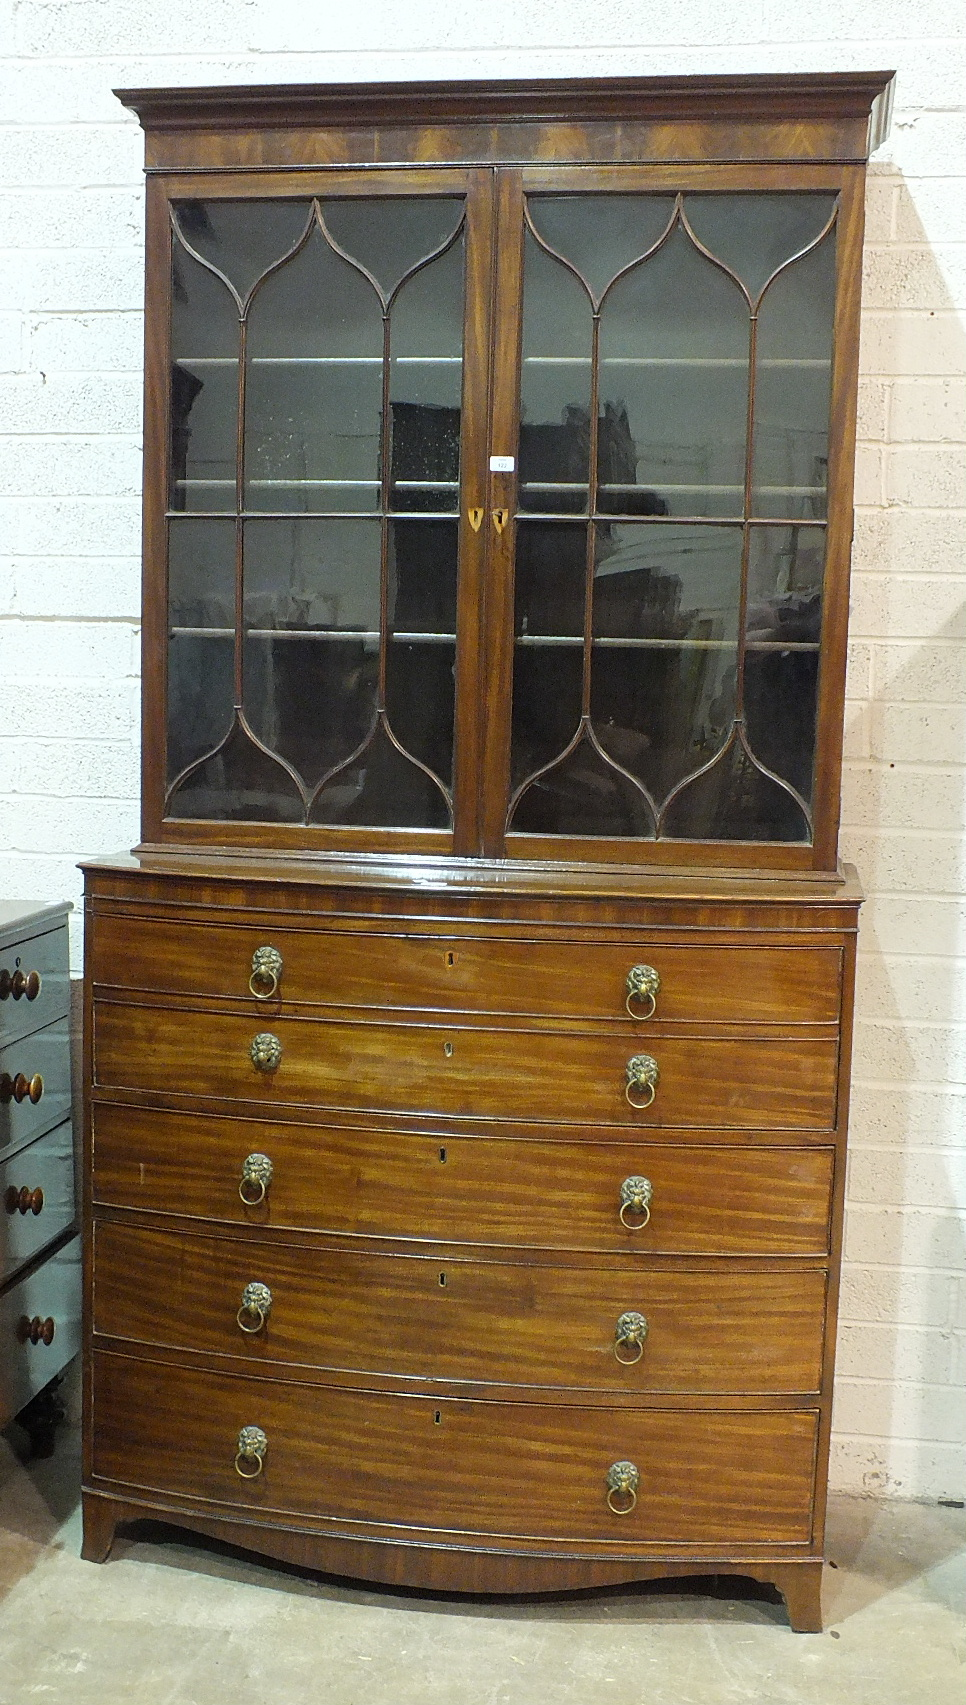 Lot 45 - A George III mahogany bow fronted secretaire bookcase, the moulded cornice above a pair of gothic